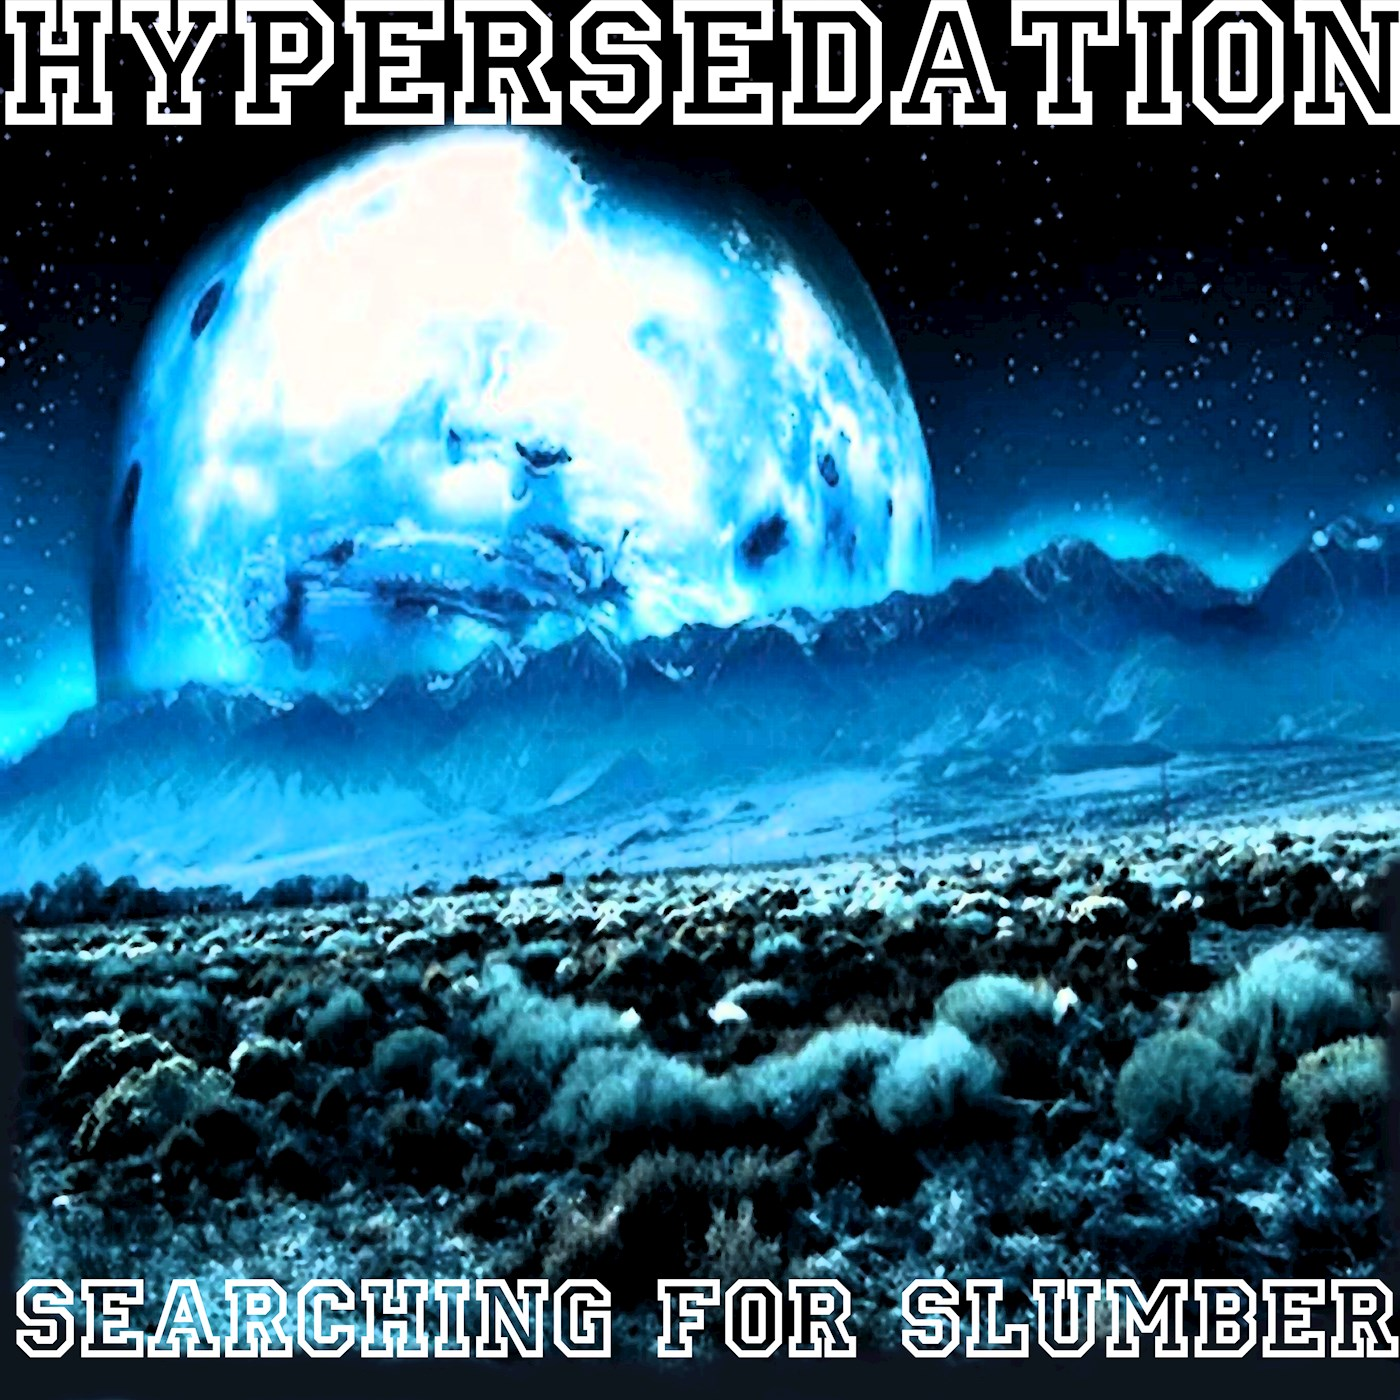 Hypersedation